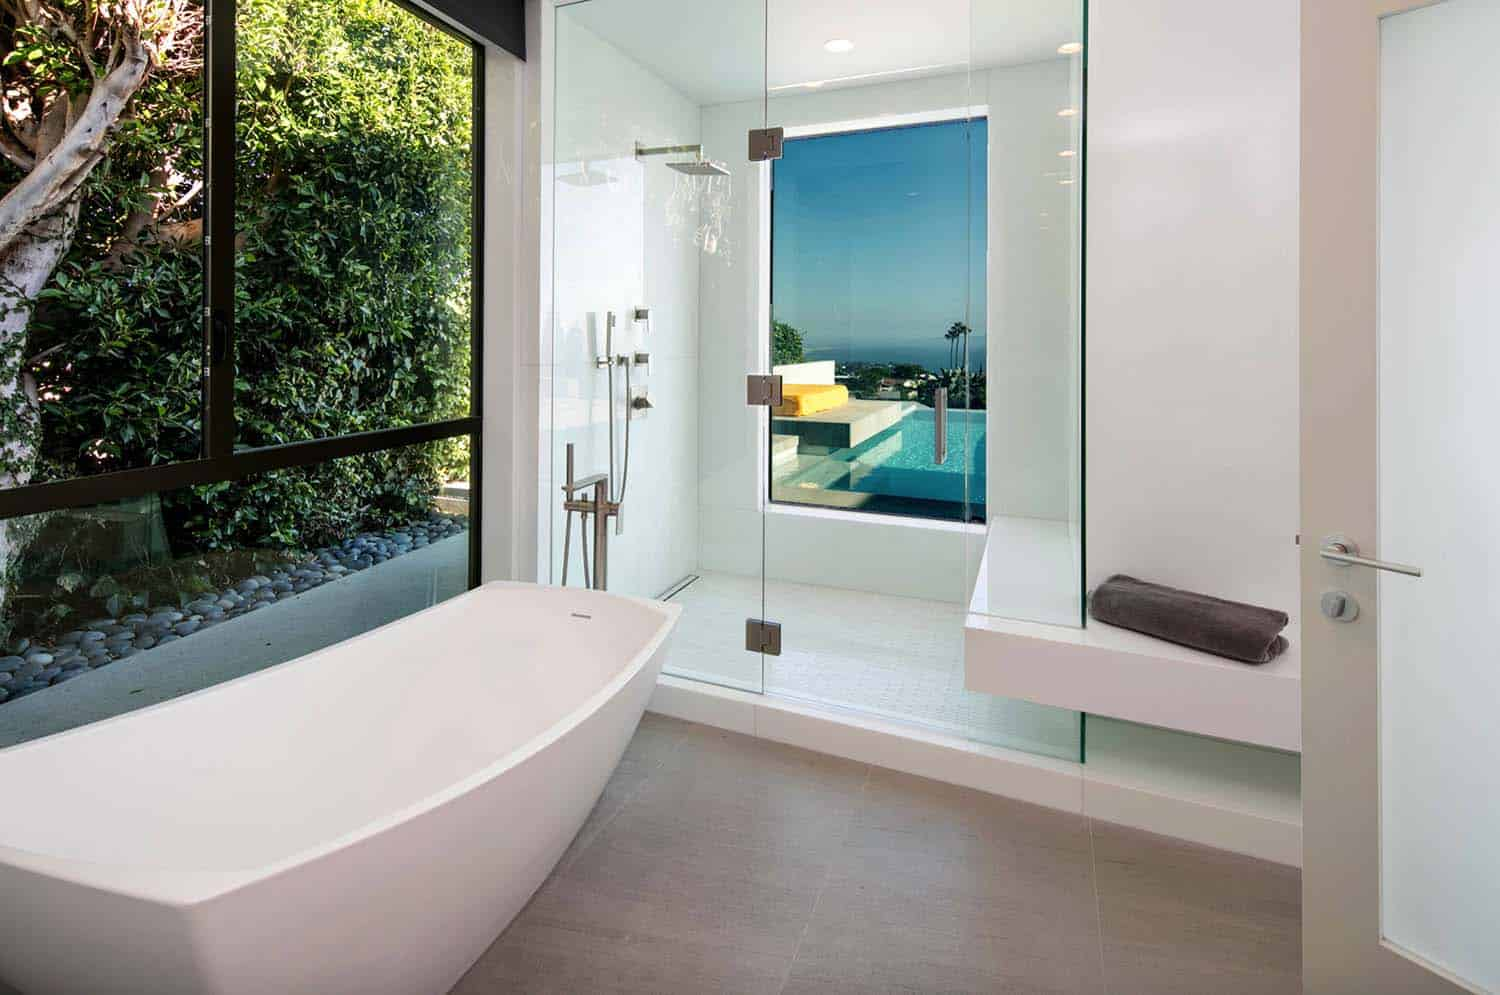 Striking Contemporary Home-Abramson Teiger Architects-07-1 Kindesign